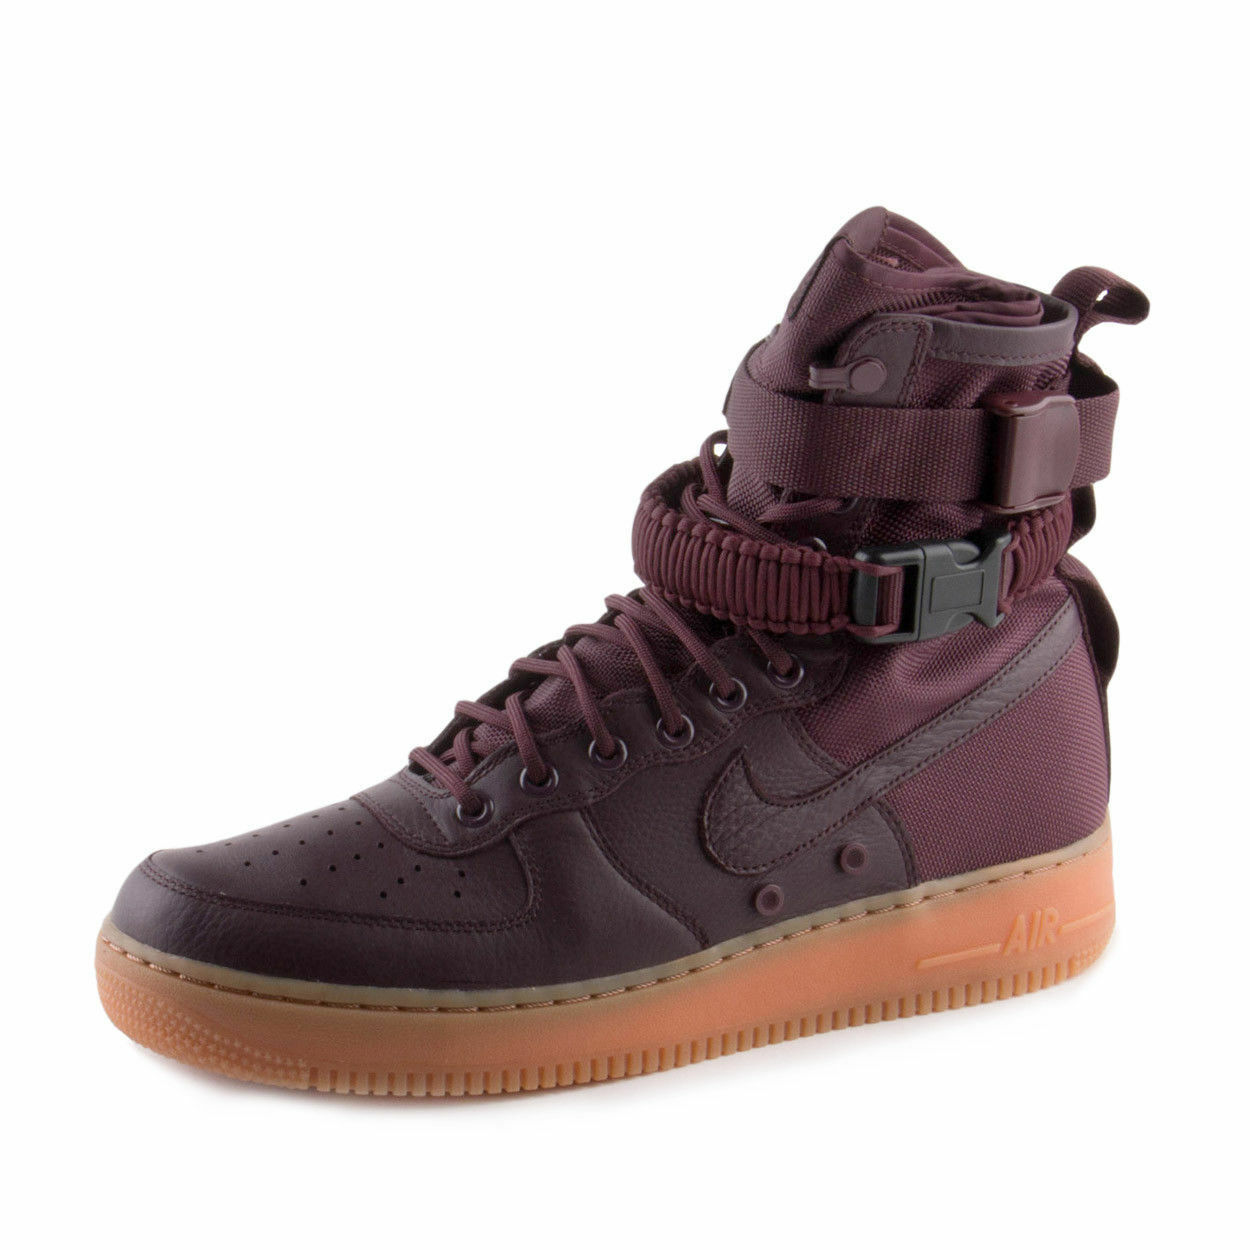 Nike Men's SF AF1 Sneakers Size 7 to 13 us 864024 600